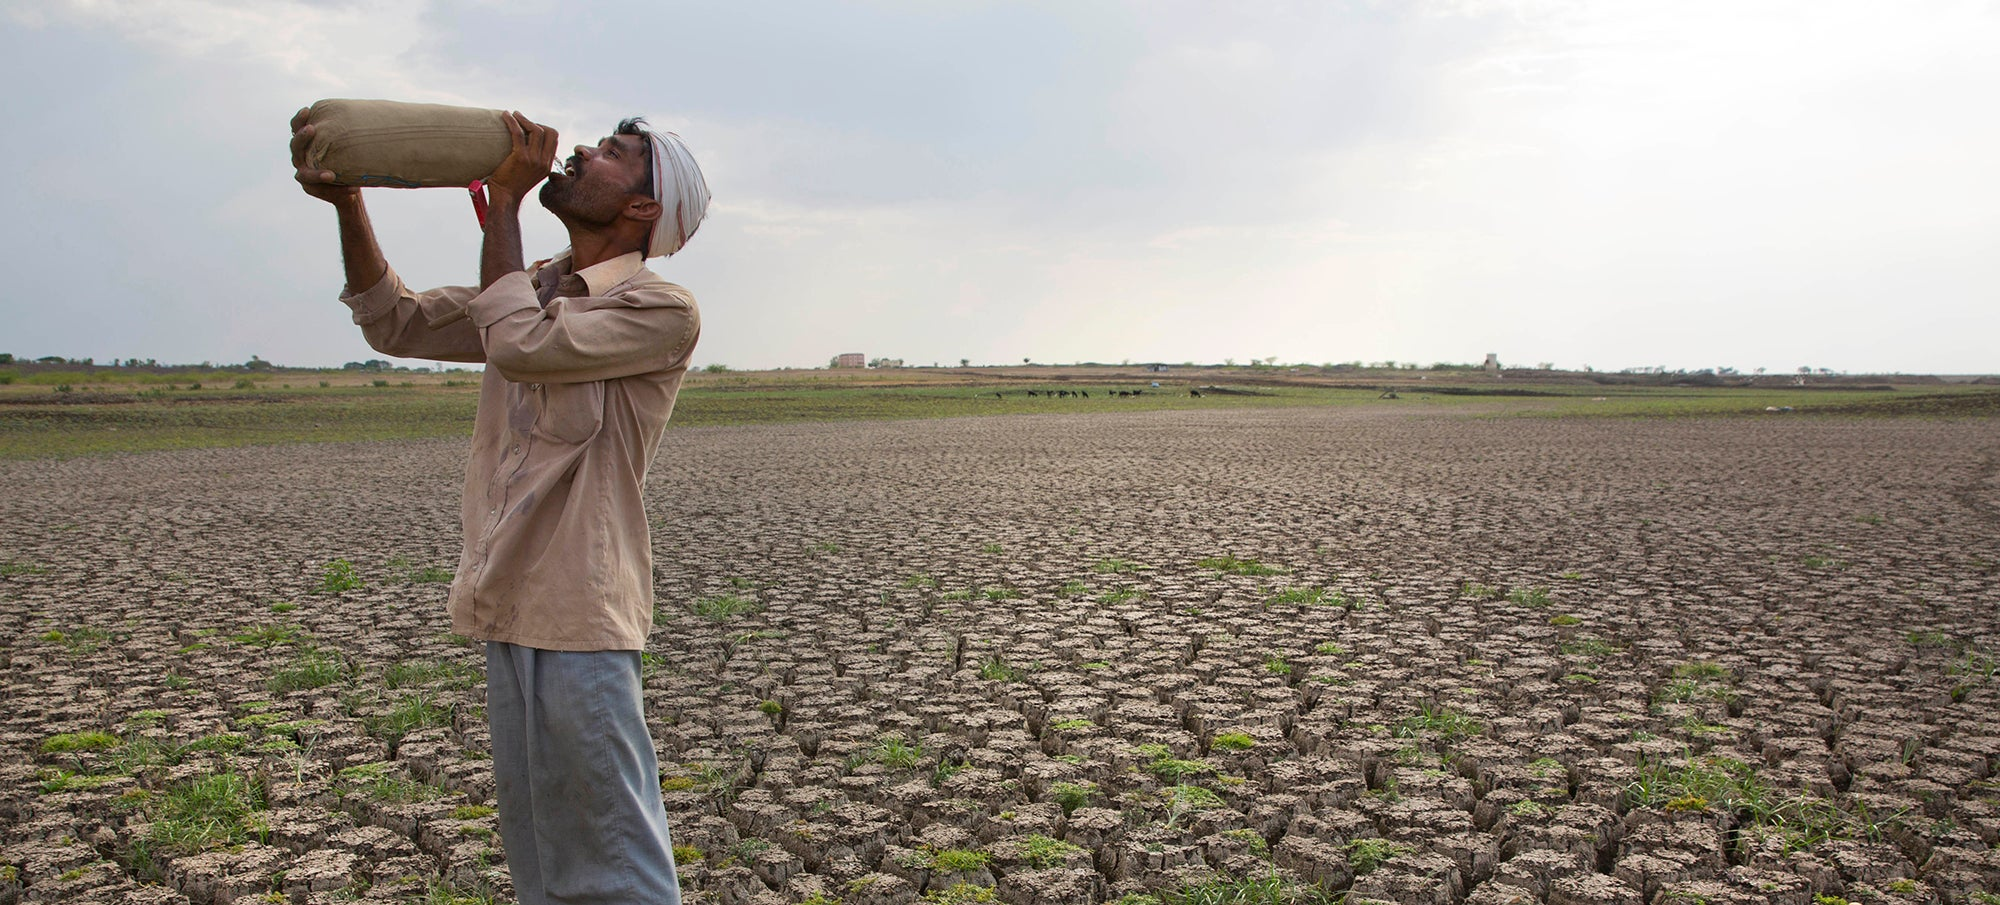 India Experienced Its Hottest Ever Recorded Temperature Of 51C